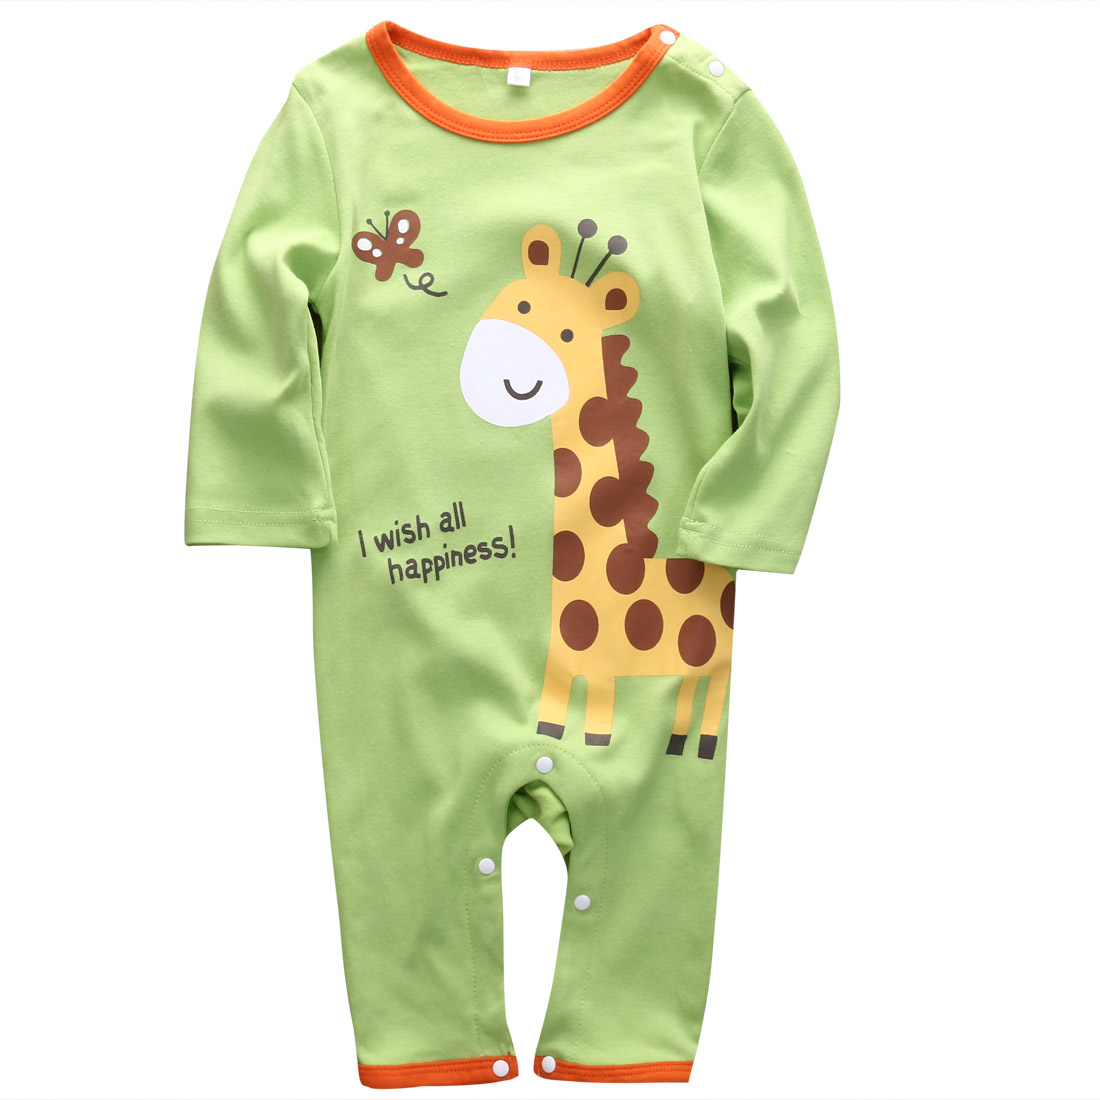 The Plaid Giraffe offers a variety of girls' and boys' accessories, including jewelry, shoes, rain boots, hats, tights, socks, hair ties, bows ties, and more! GIFTS The Plaid Giraffe carries gifts for babies, toddlers, and older children.